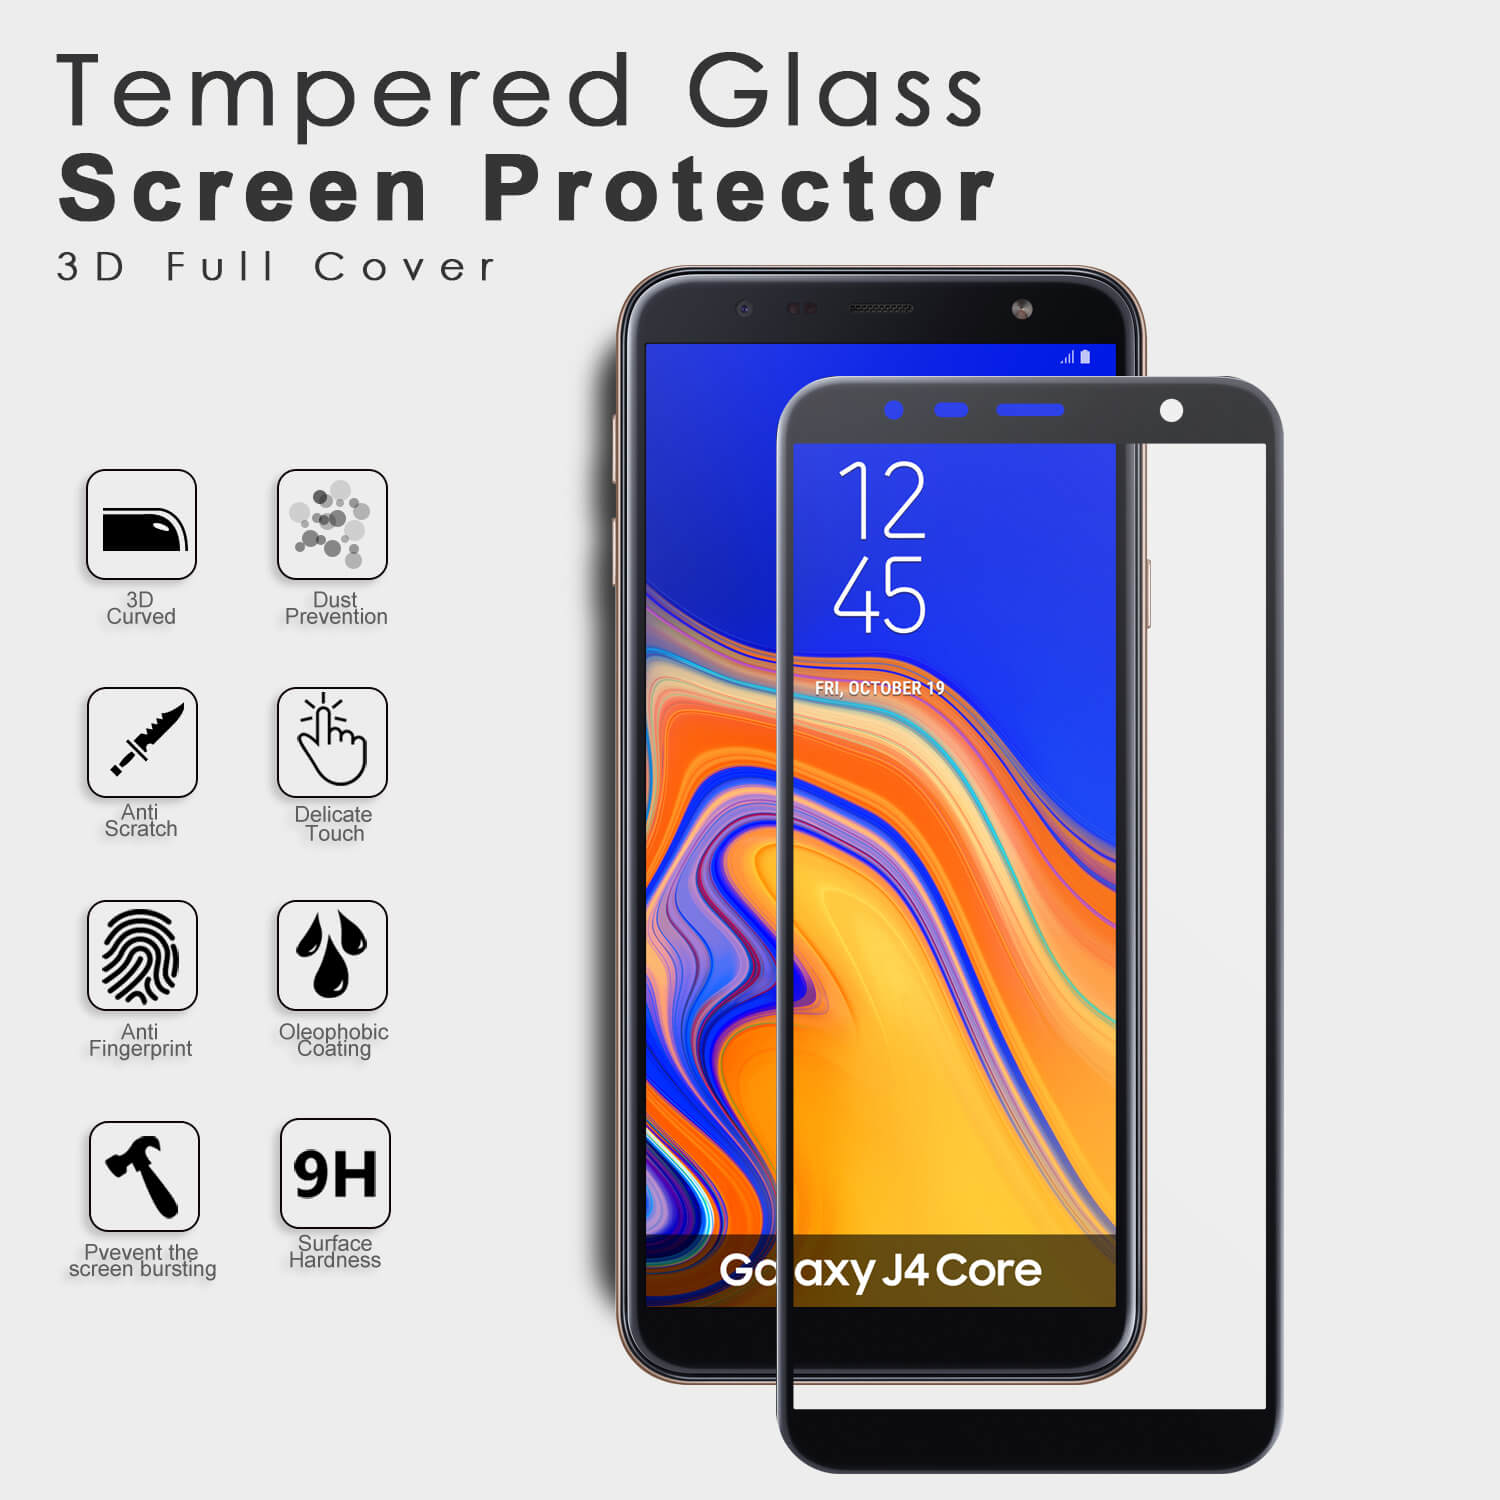 VMAX Samsung Galaxy J4 Core 3D Curved Full Cover Tempered Glass Screen Protector